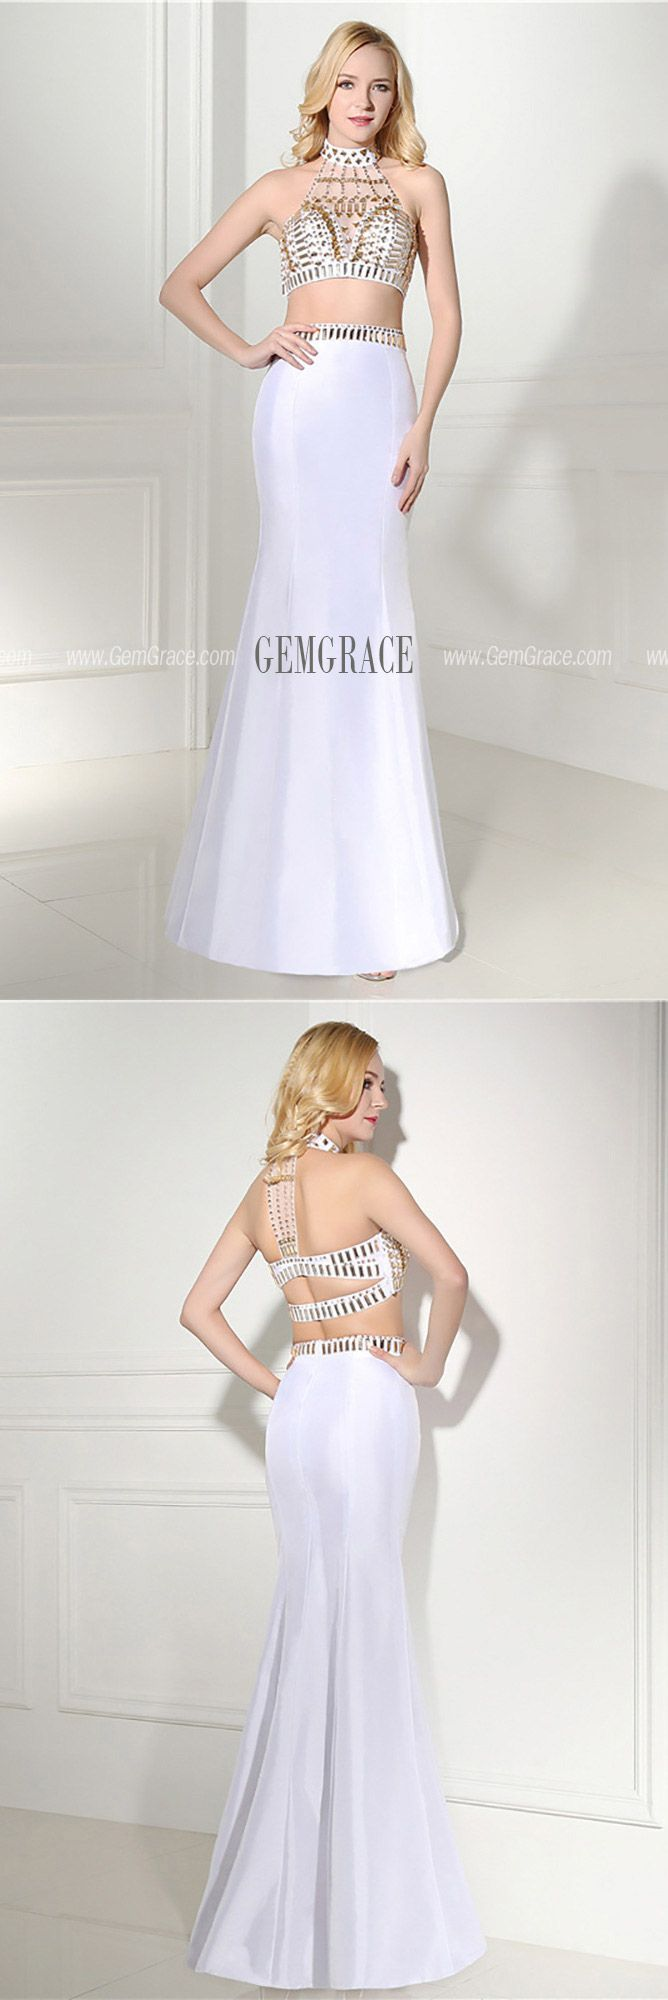 128 99 Unique 2 Piece White Semi Formal Dress With Halter Crystal Top H76124 Gemgrace Com White Semi Formal Dress White Homecoming Dresses Homecoming Dresses Tight [ 2000 x 668 Pixel ]